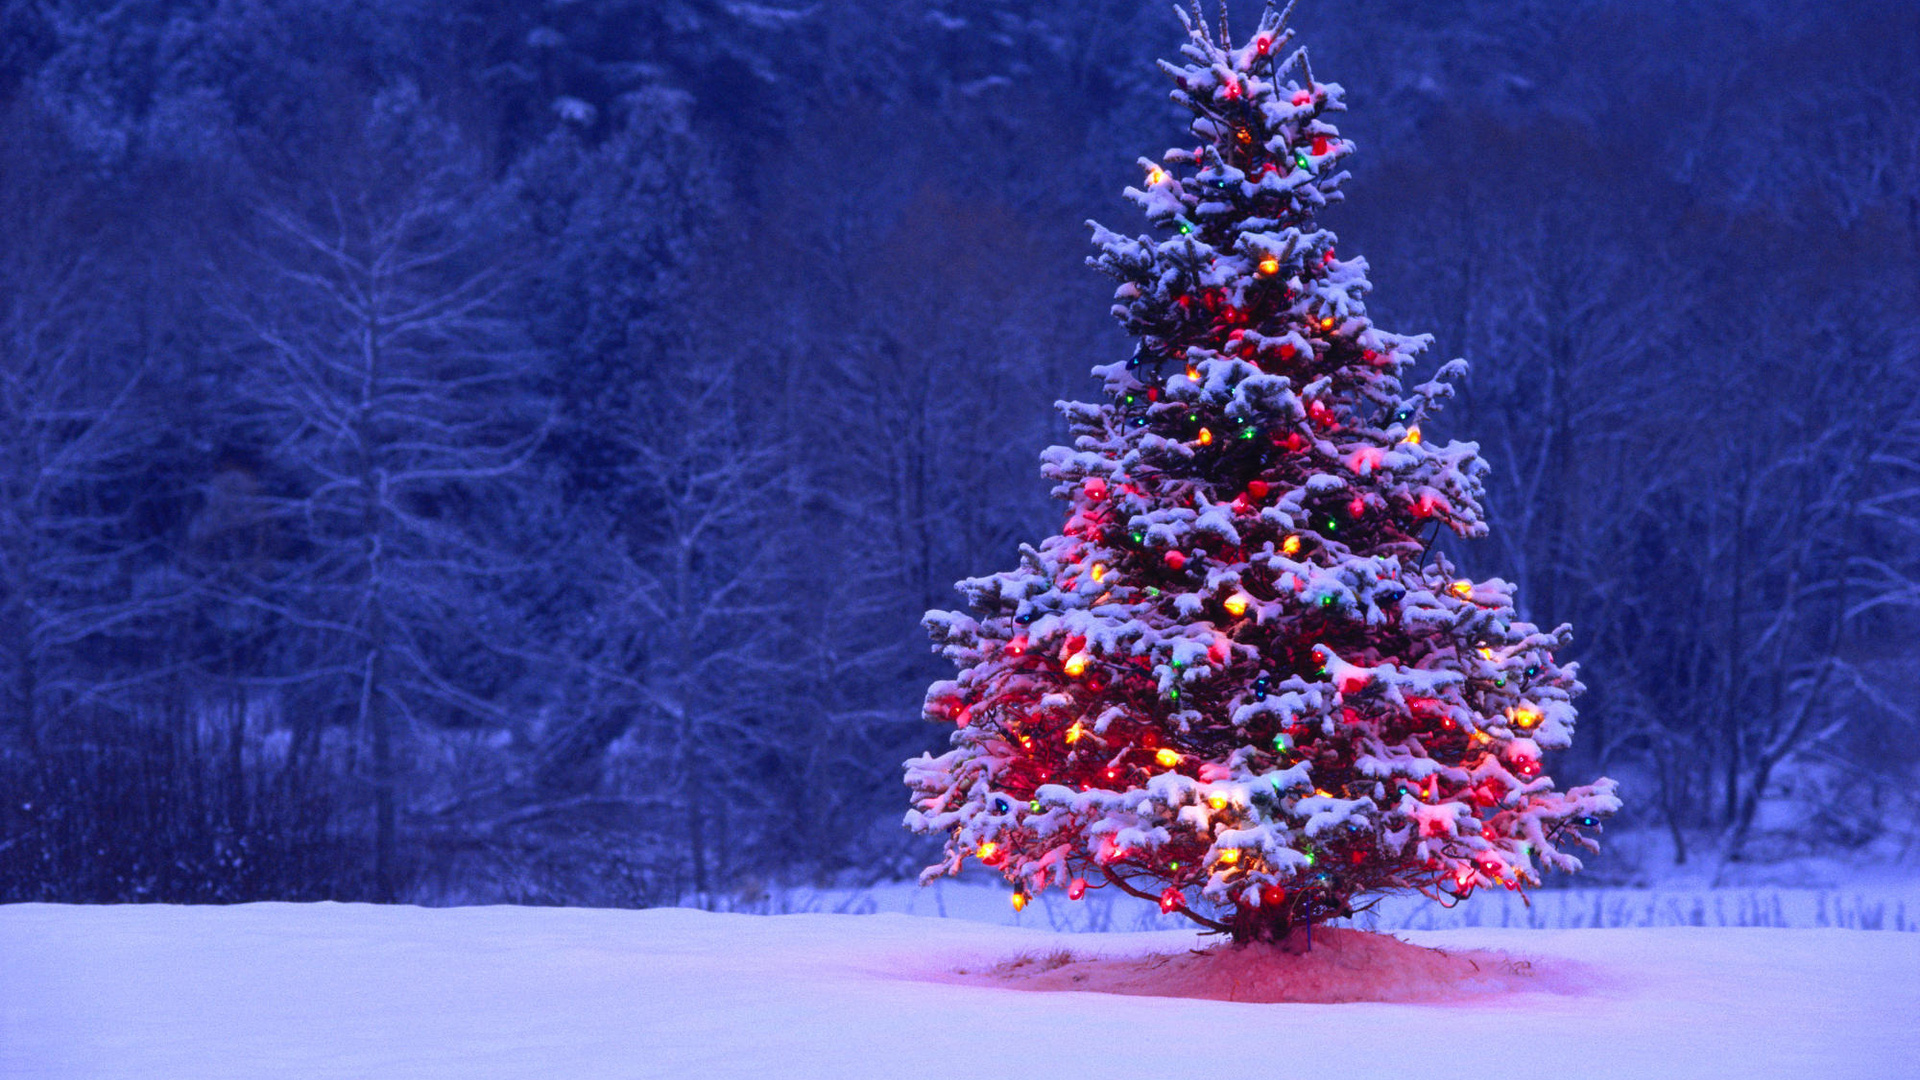 Christmas-Snow-wallpaper-wpc9003537